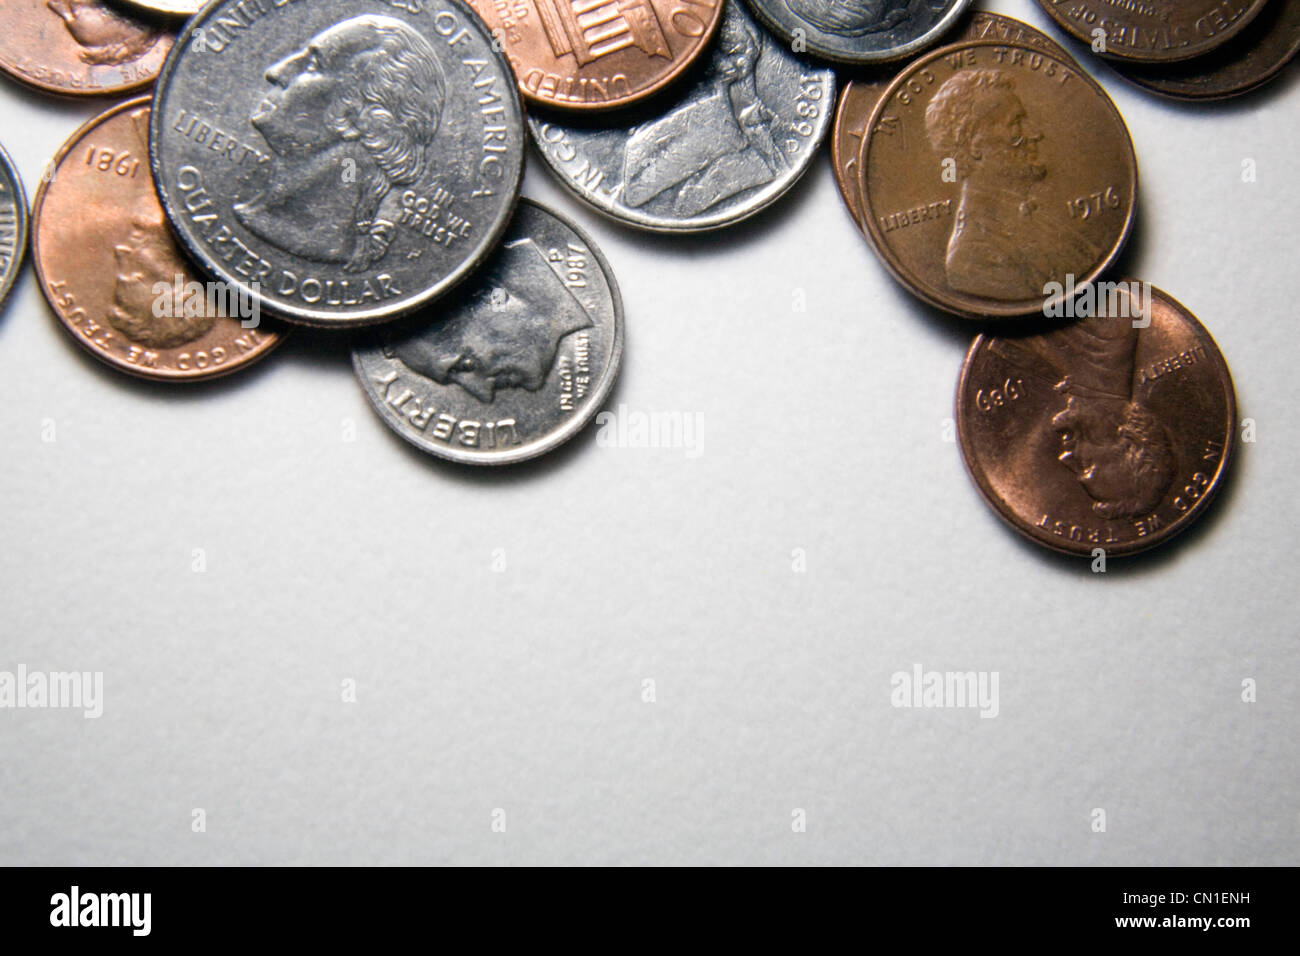 American Coins - Stock Image